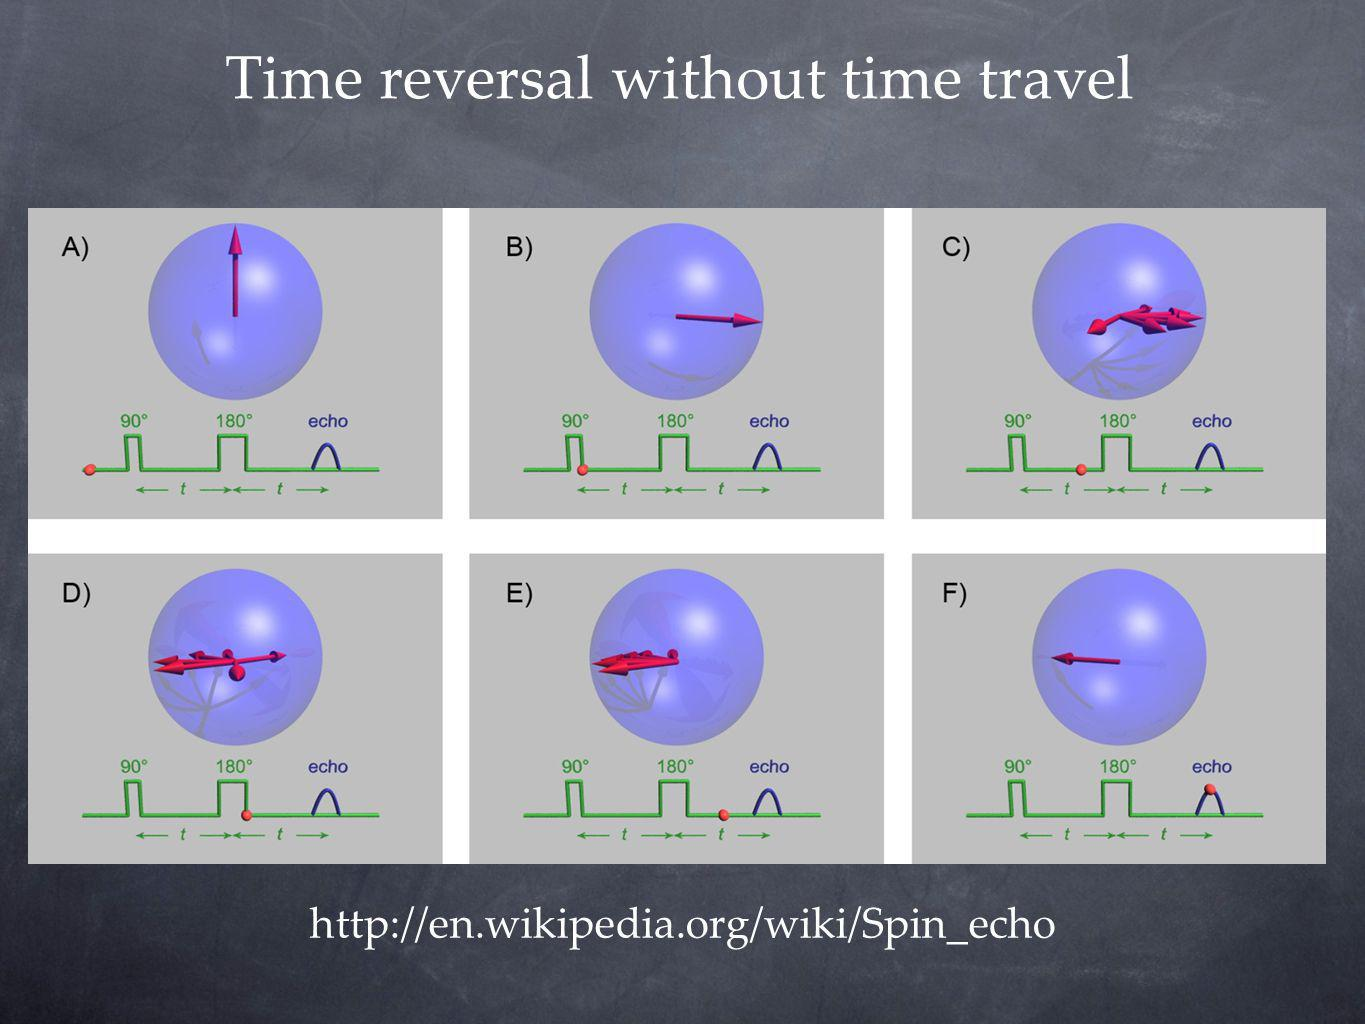 Time reversal without time travel